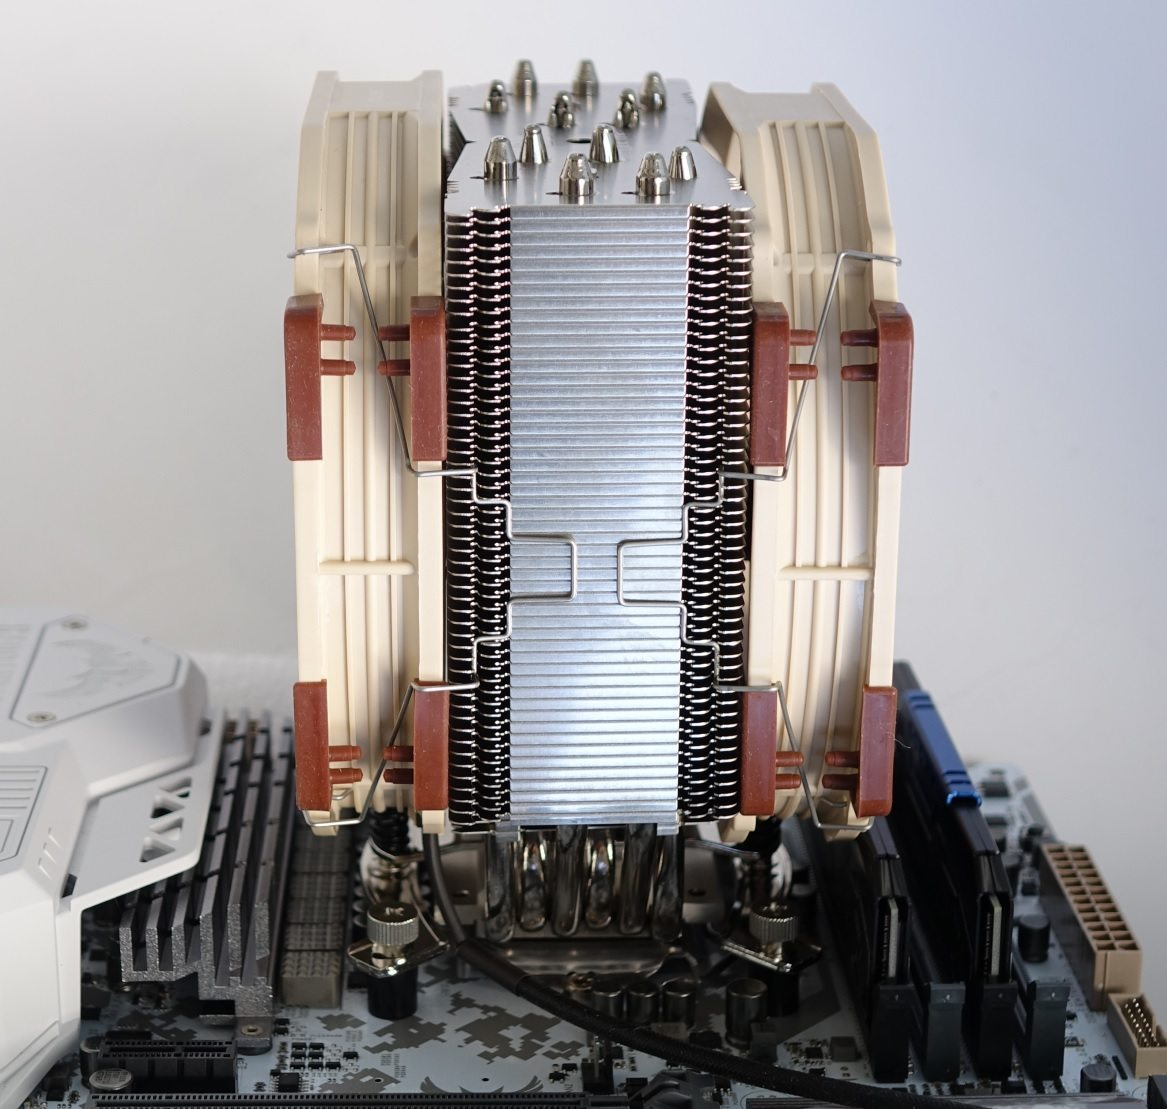 Noctua NH-U14S dual fan